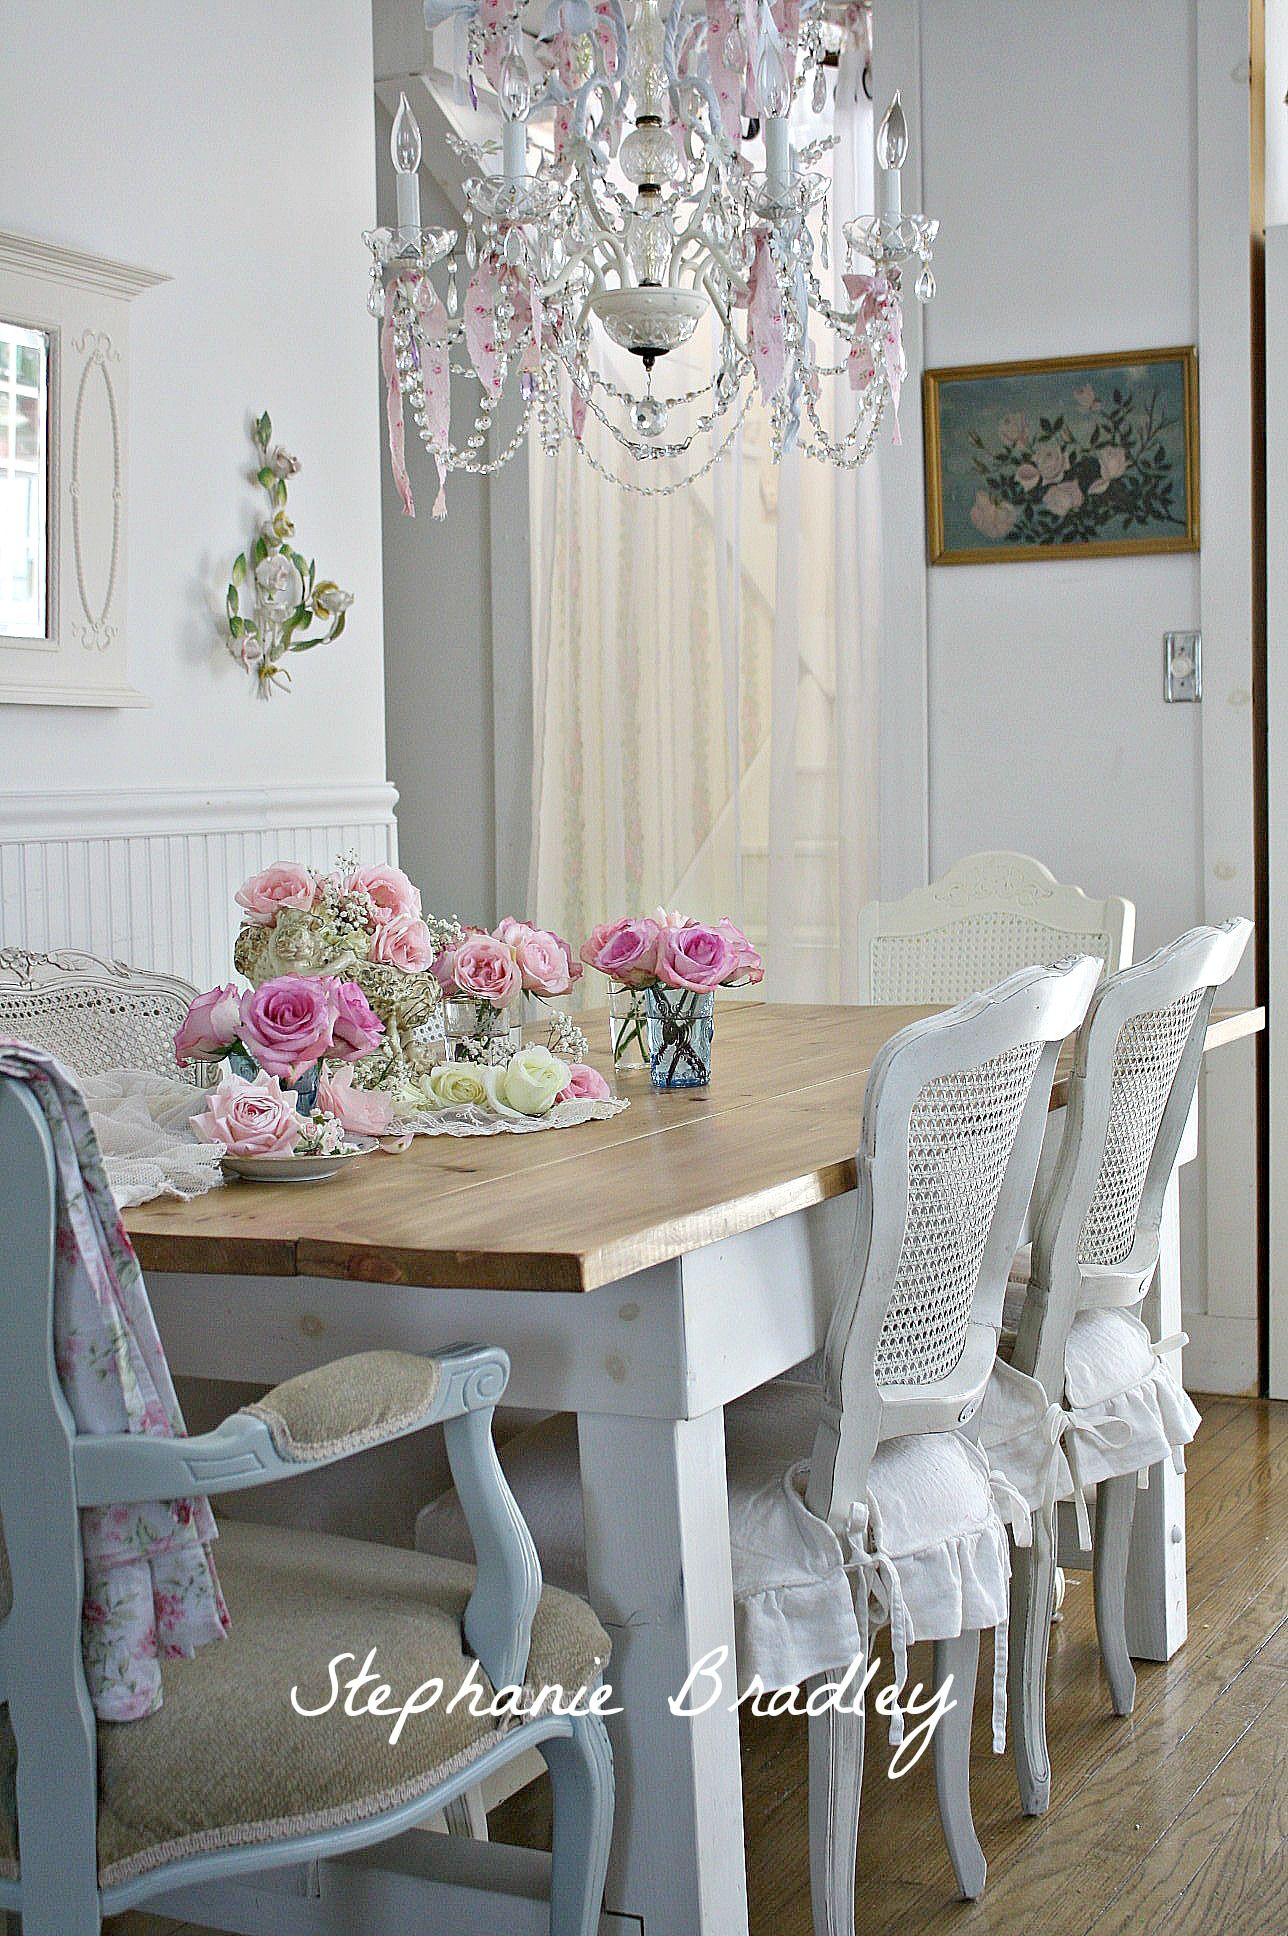 Shabby Chic Dining Room With Rose Bedecked Tableeverything Enchanting Shabby Chic Dining Room Table Inspiration